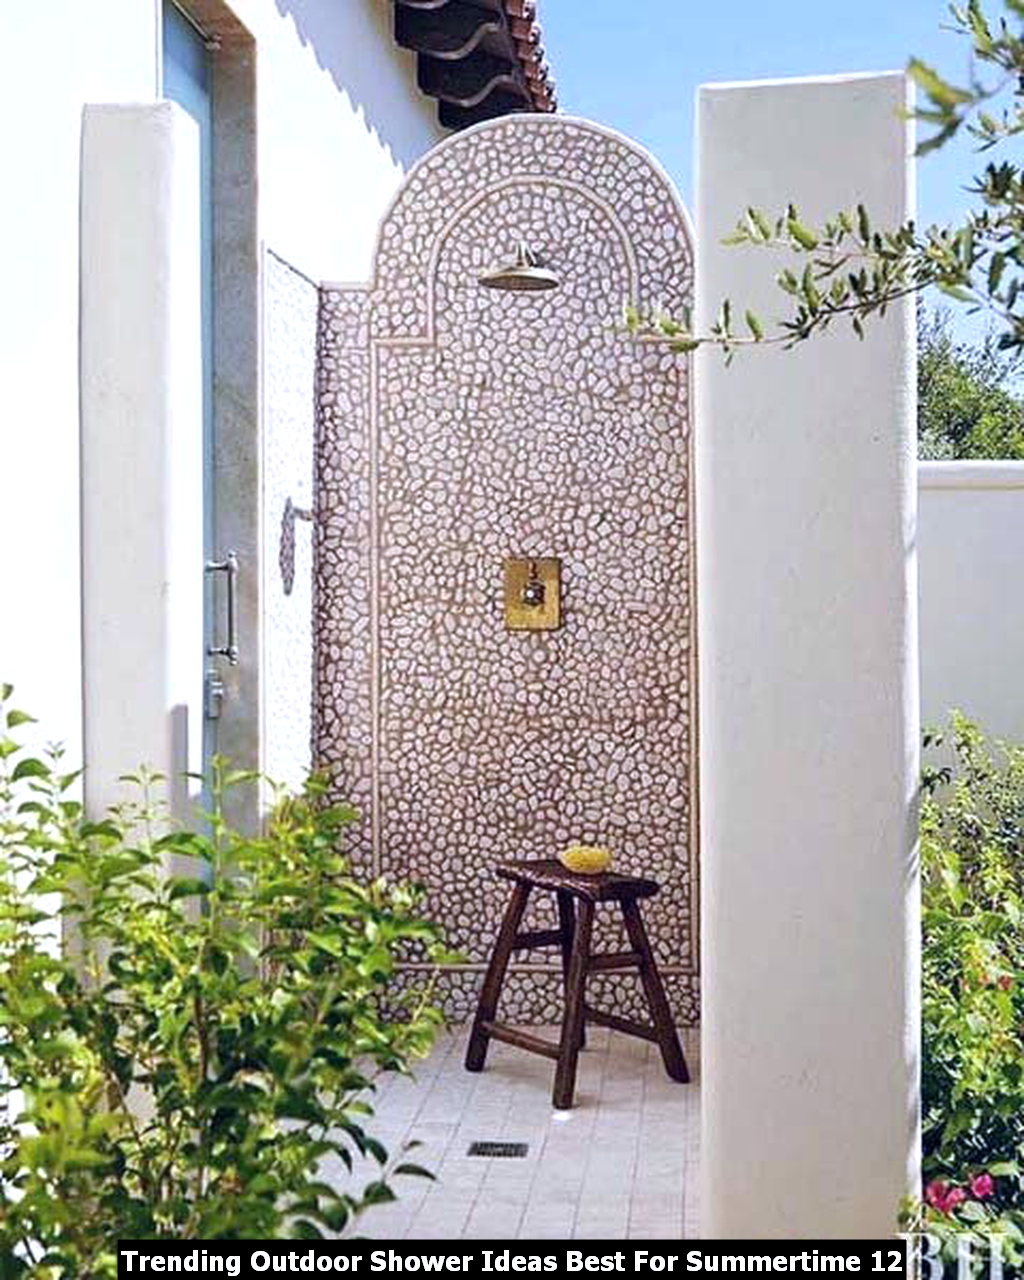 Trending Outdoor Shower Ideas Best For Summertime 12